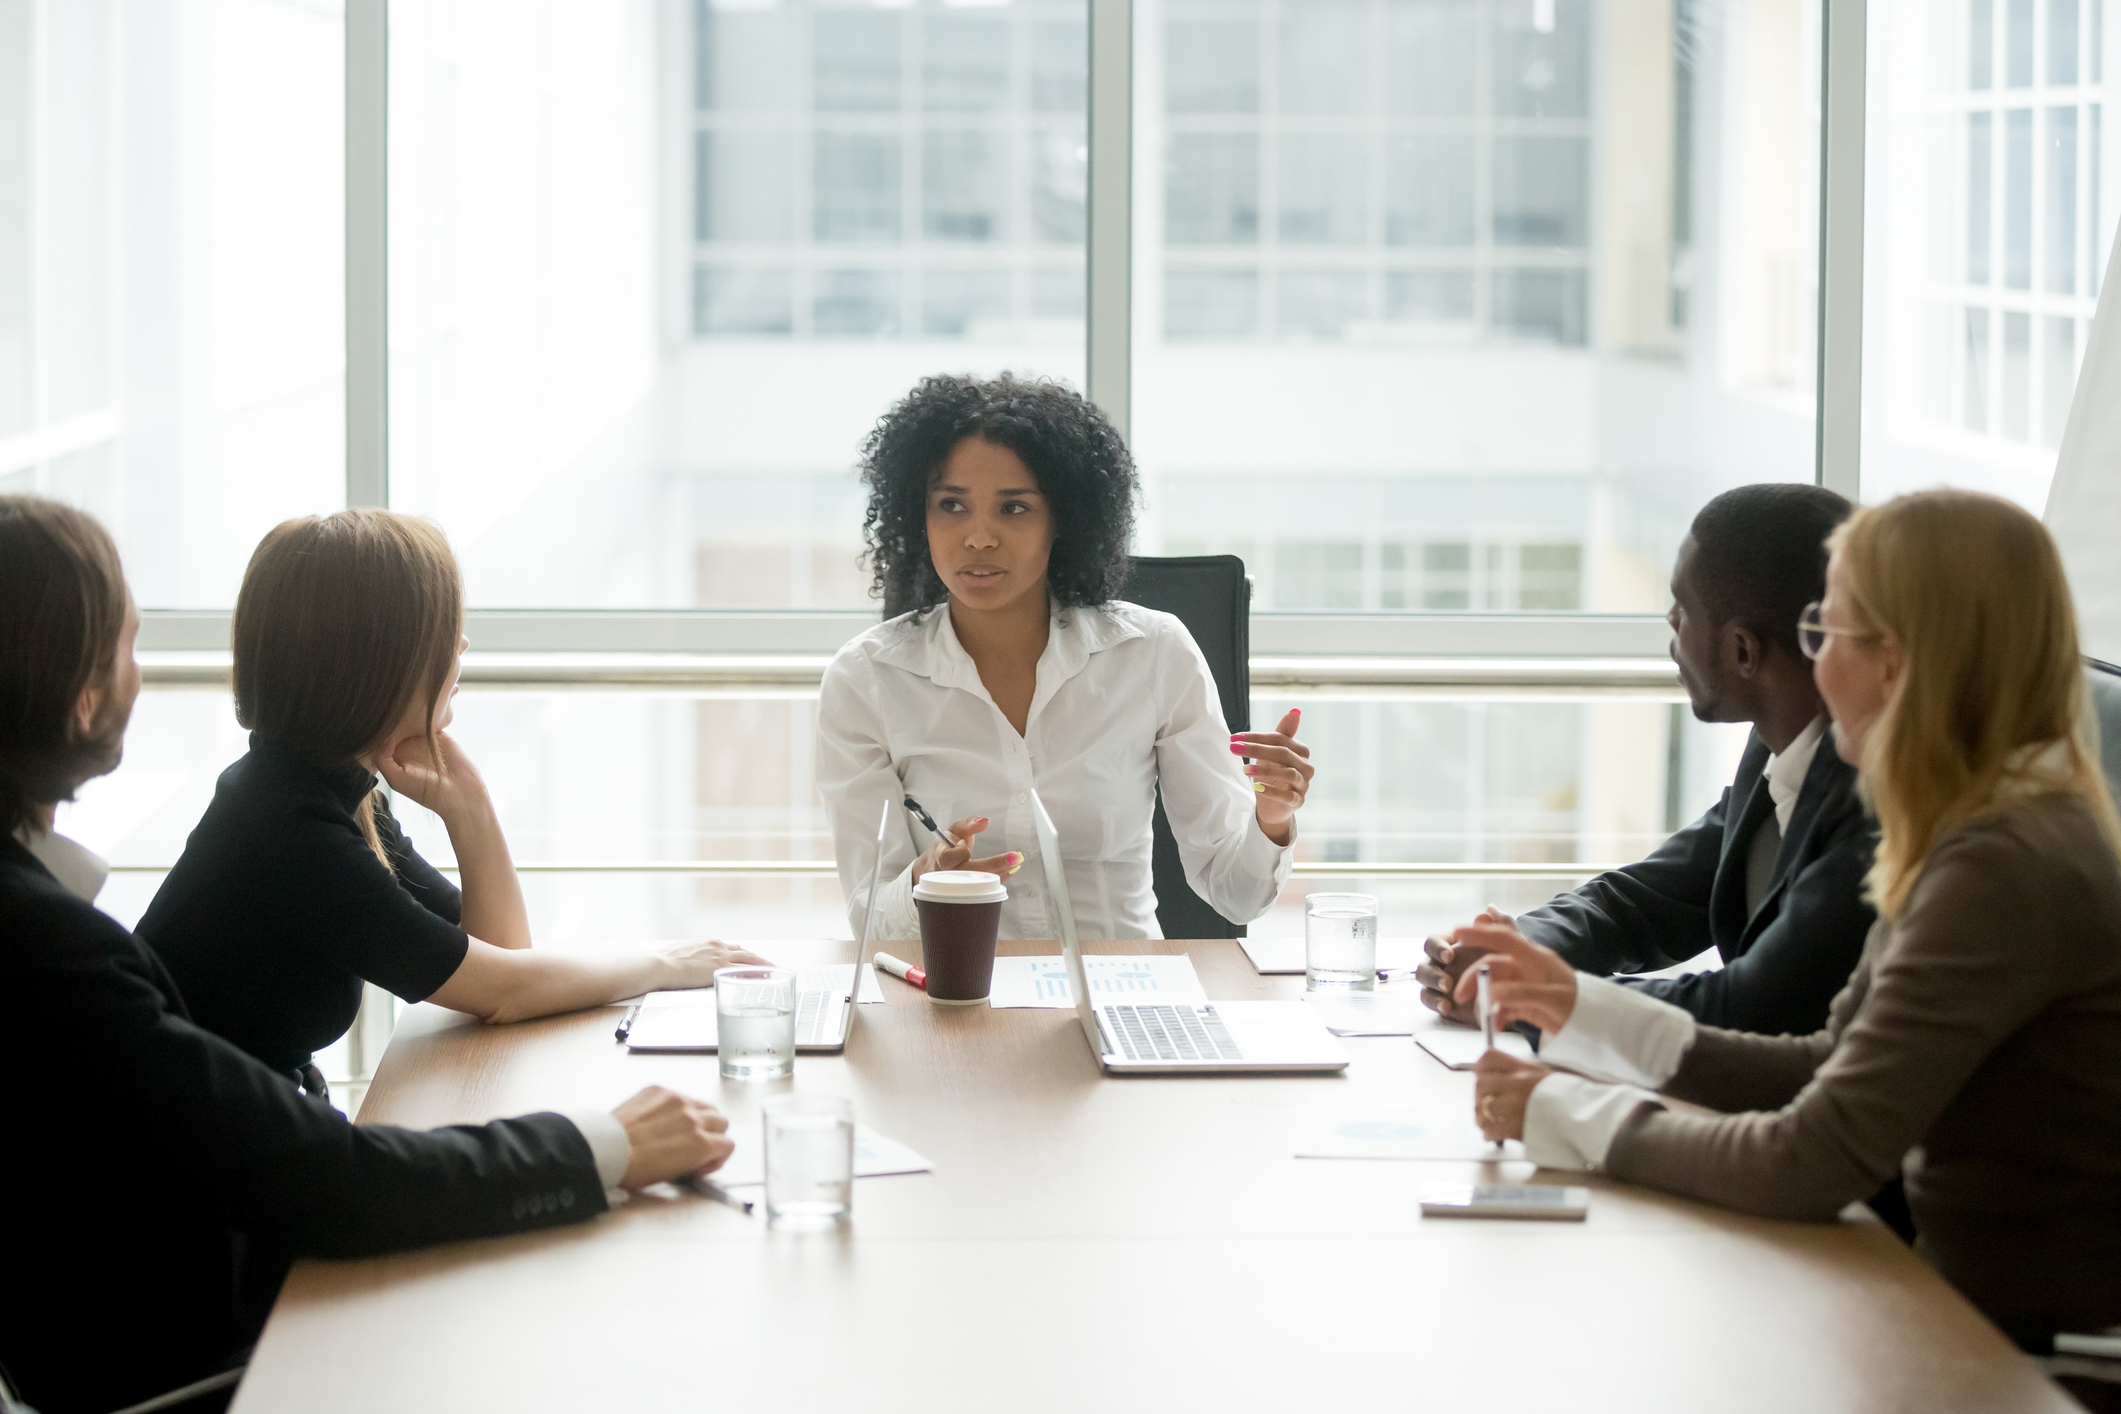 Black-female-boss-leading-corporate-meeting-talking-to-diverse-businesspeople-923039680_2125x1416